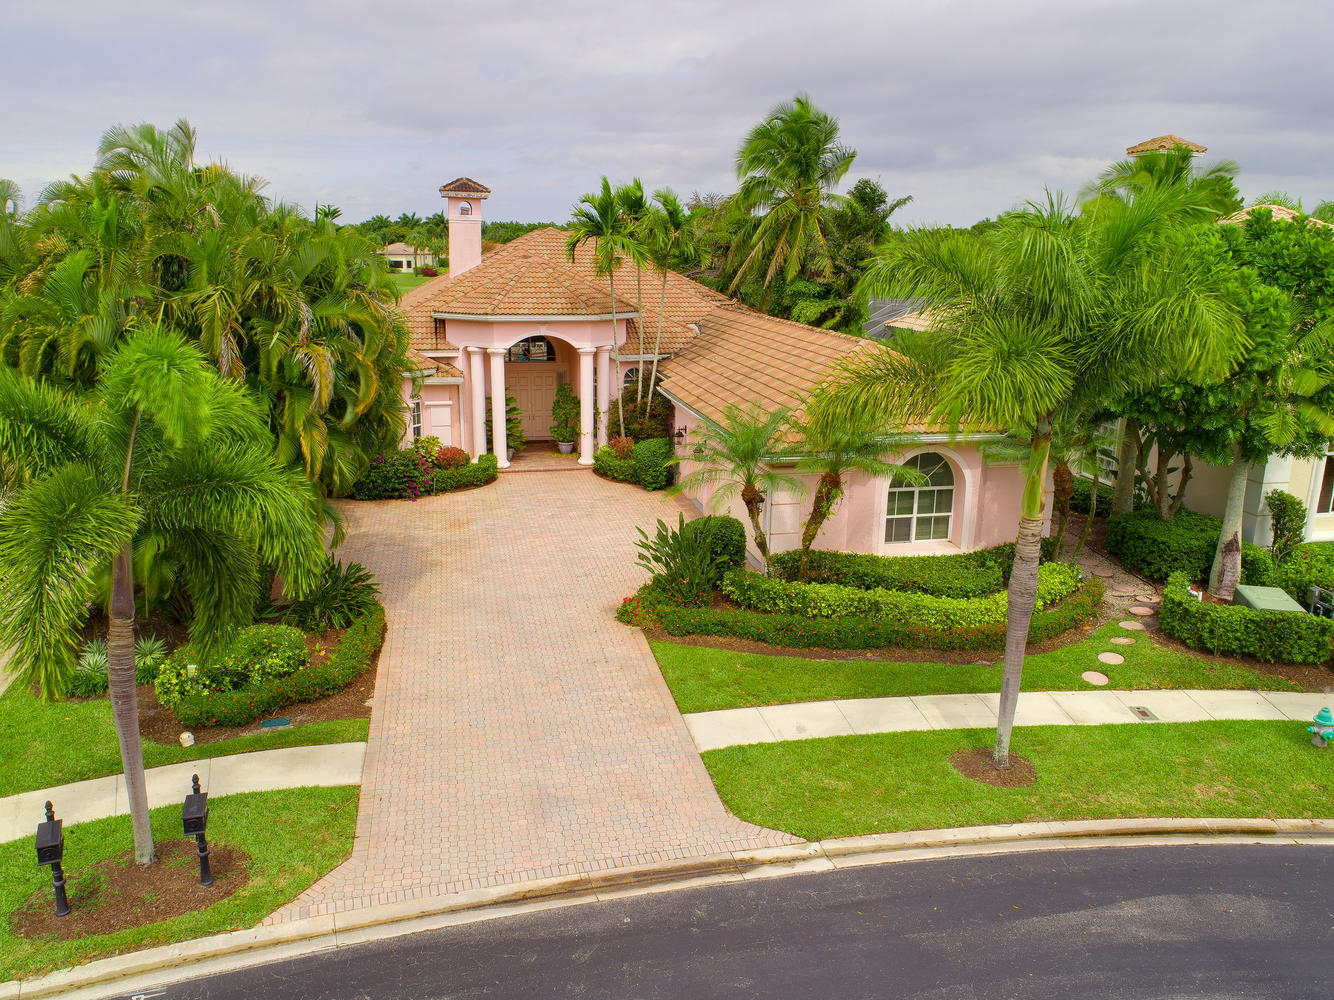 Home for sale in Ibis, Ibis Isle West Palm Beach Florida